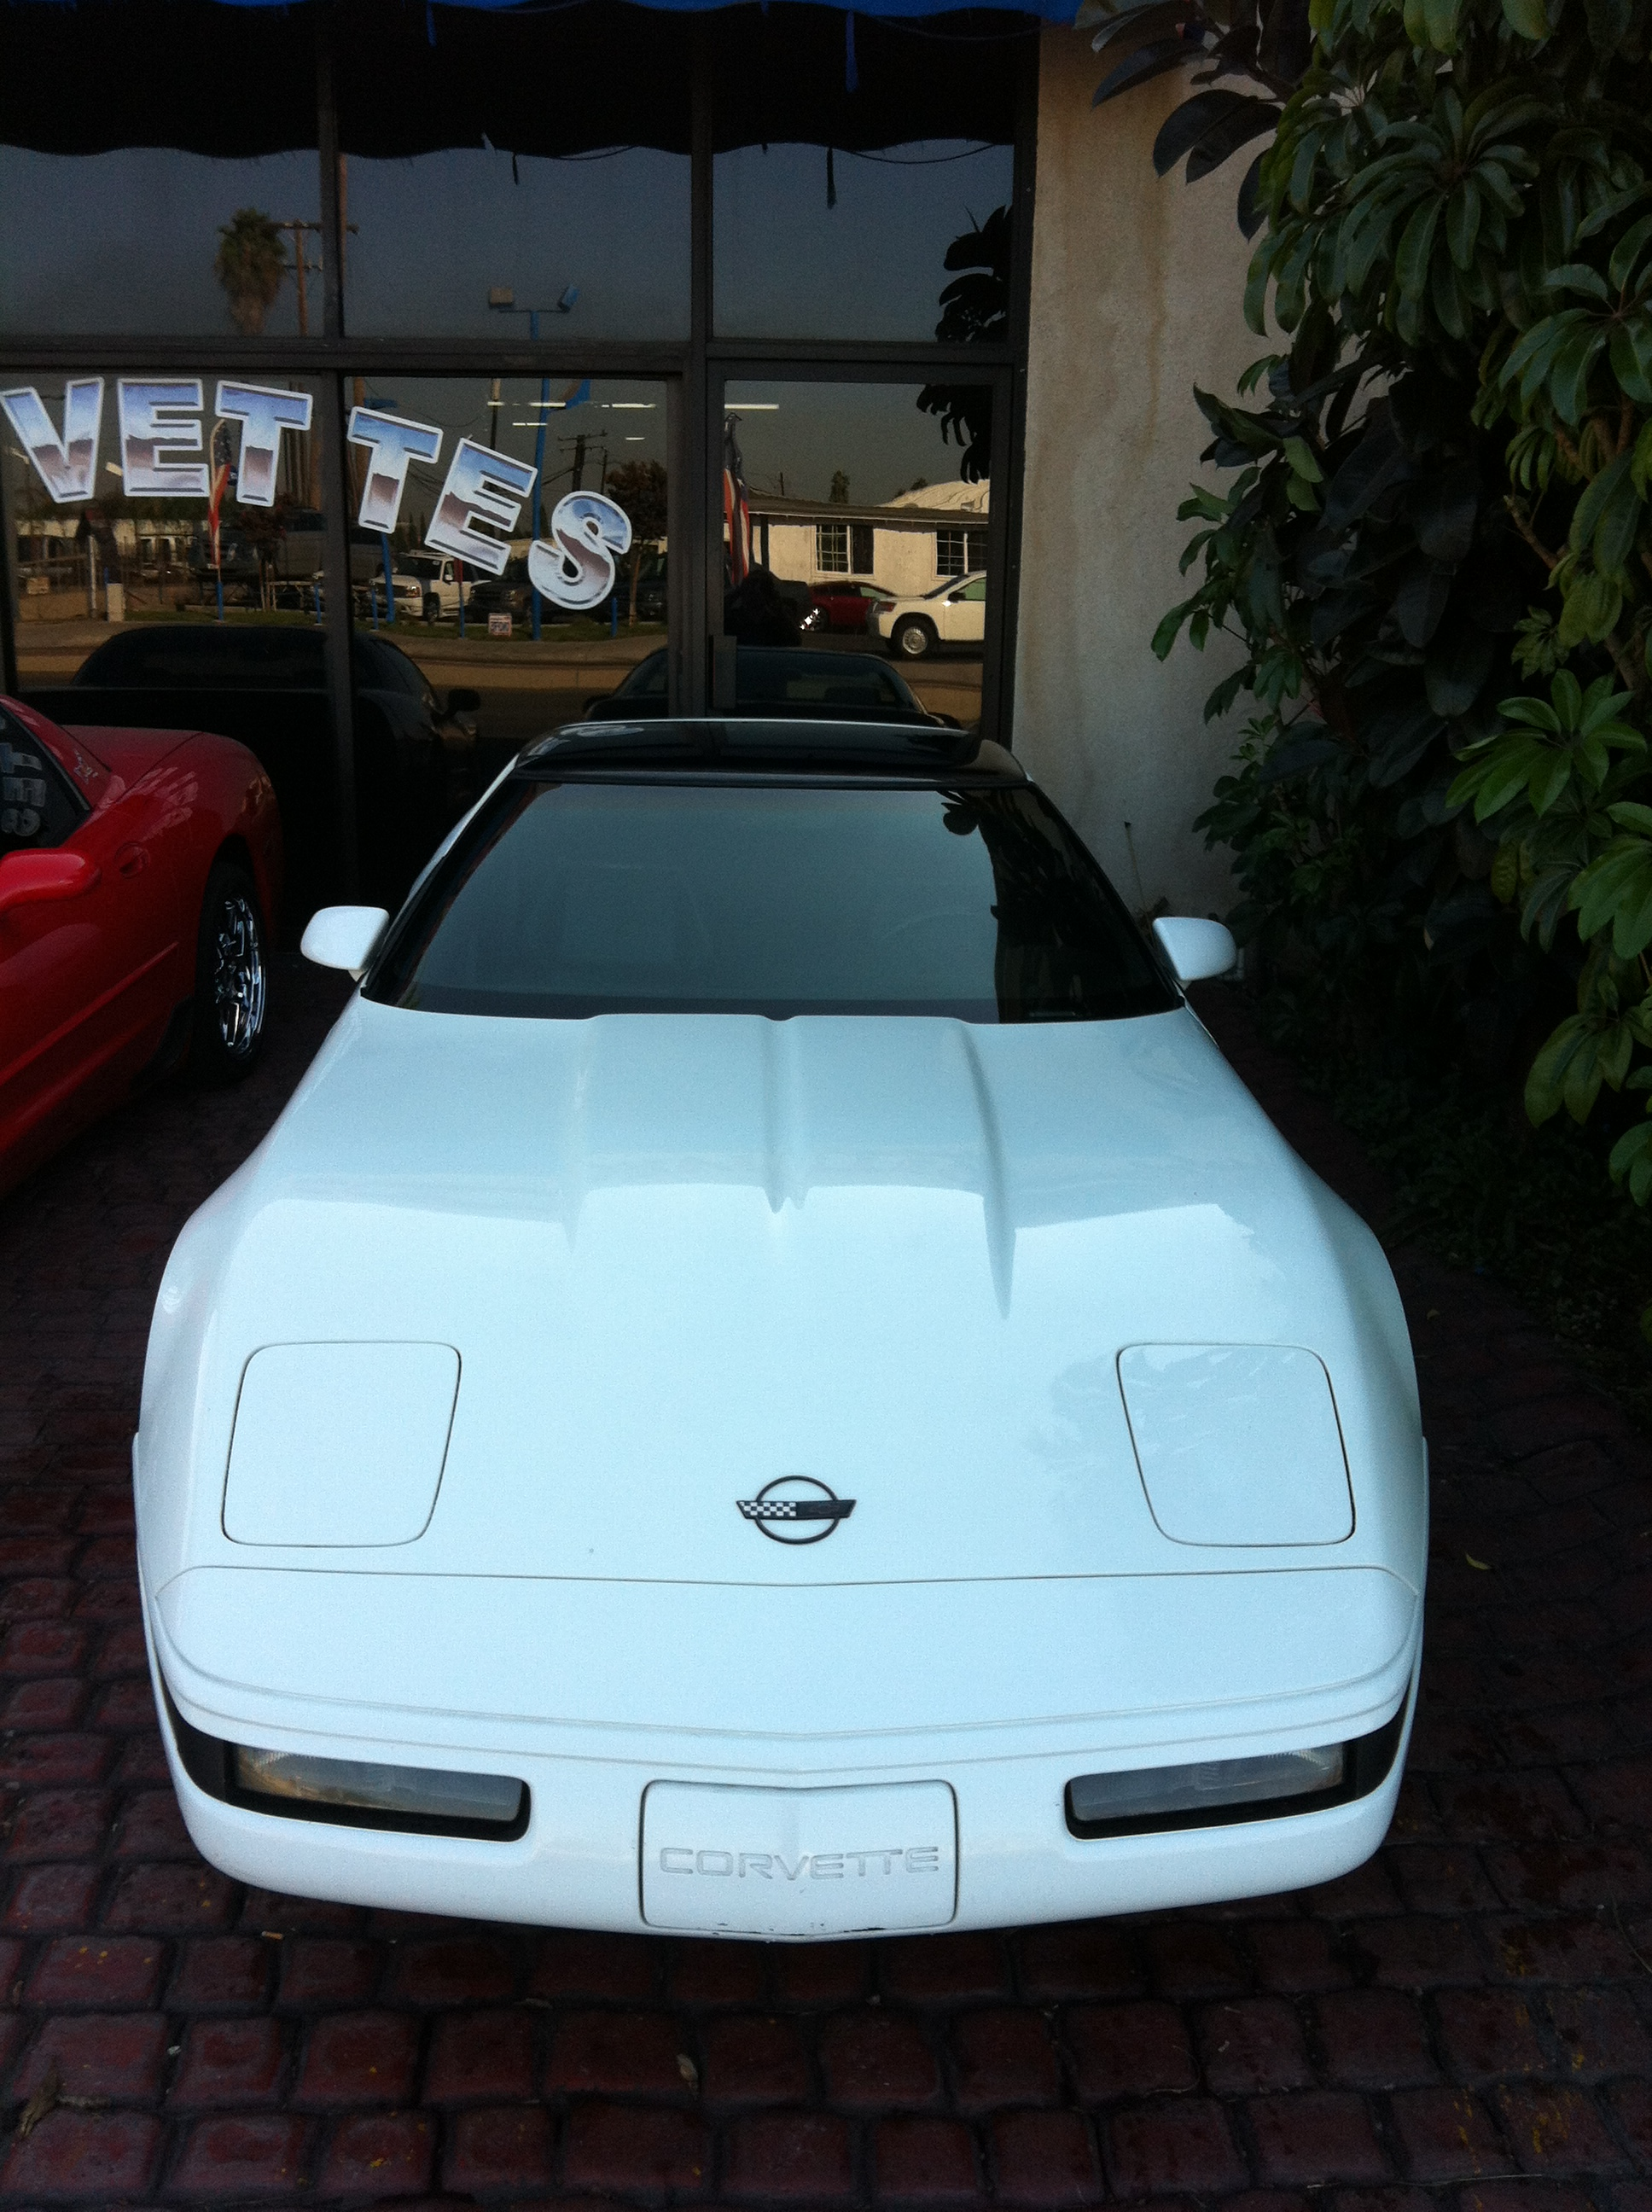 1992 corvette white on black interior 6 speed manual 1992 corvette interior parts